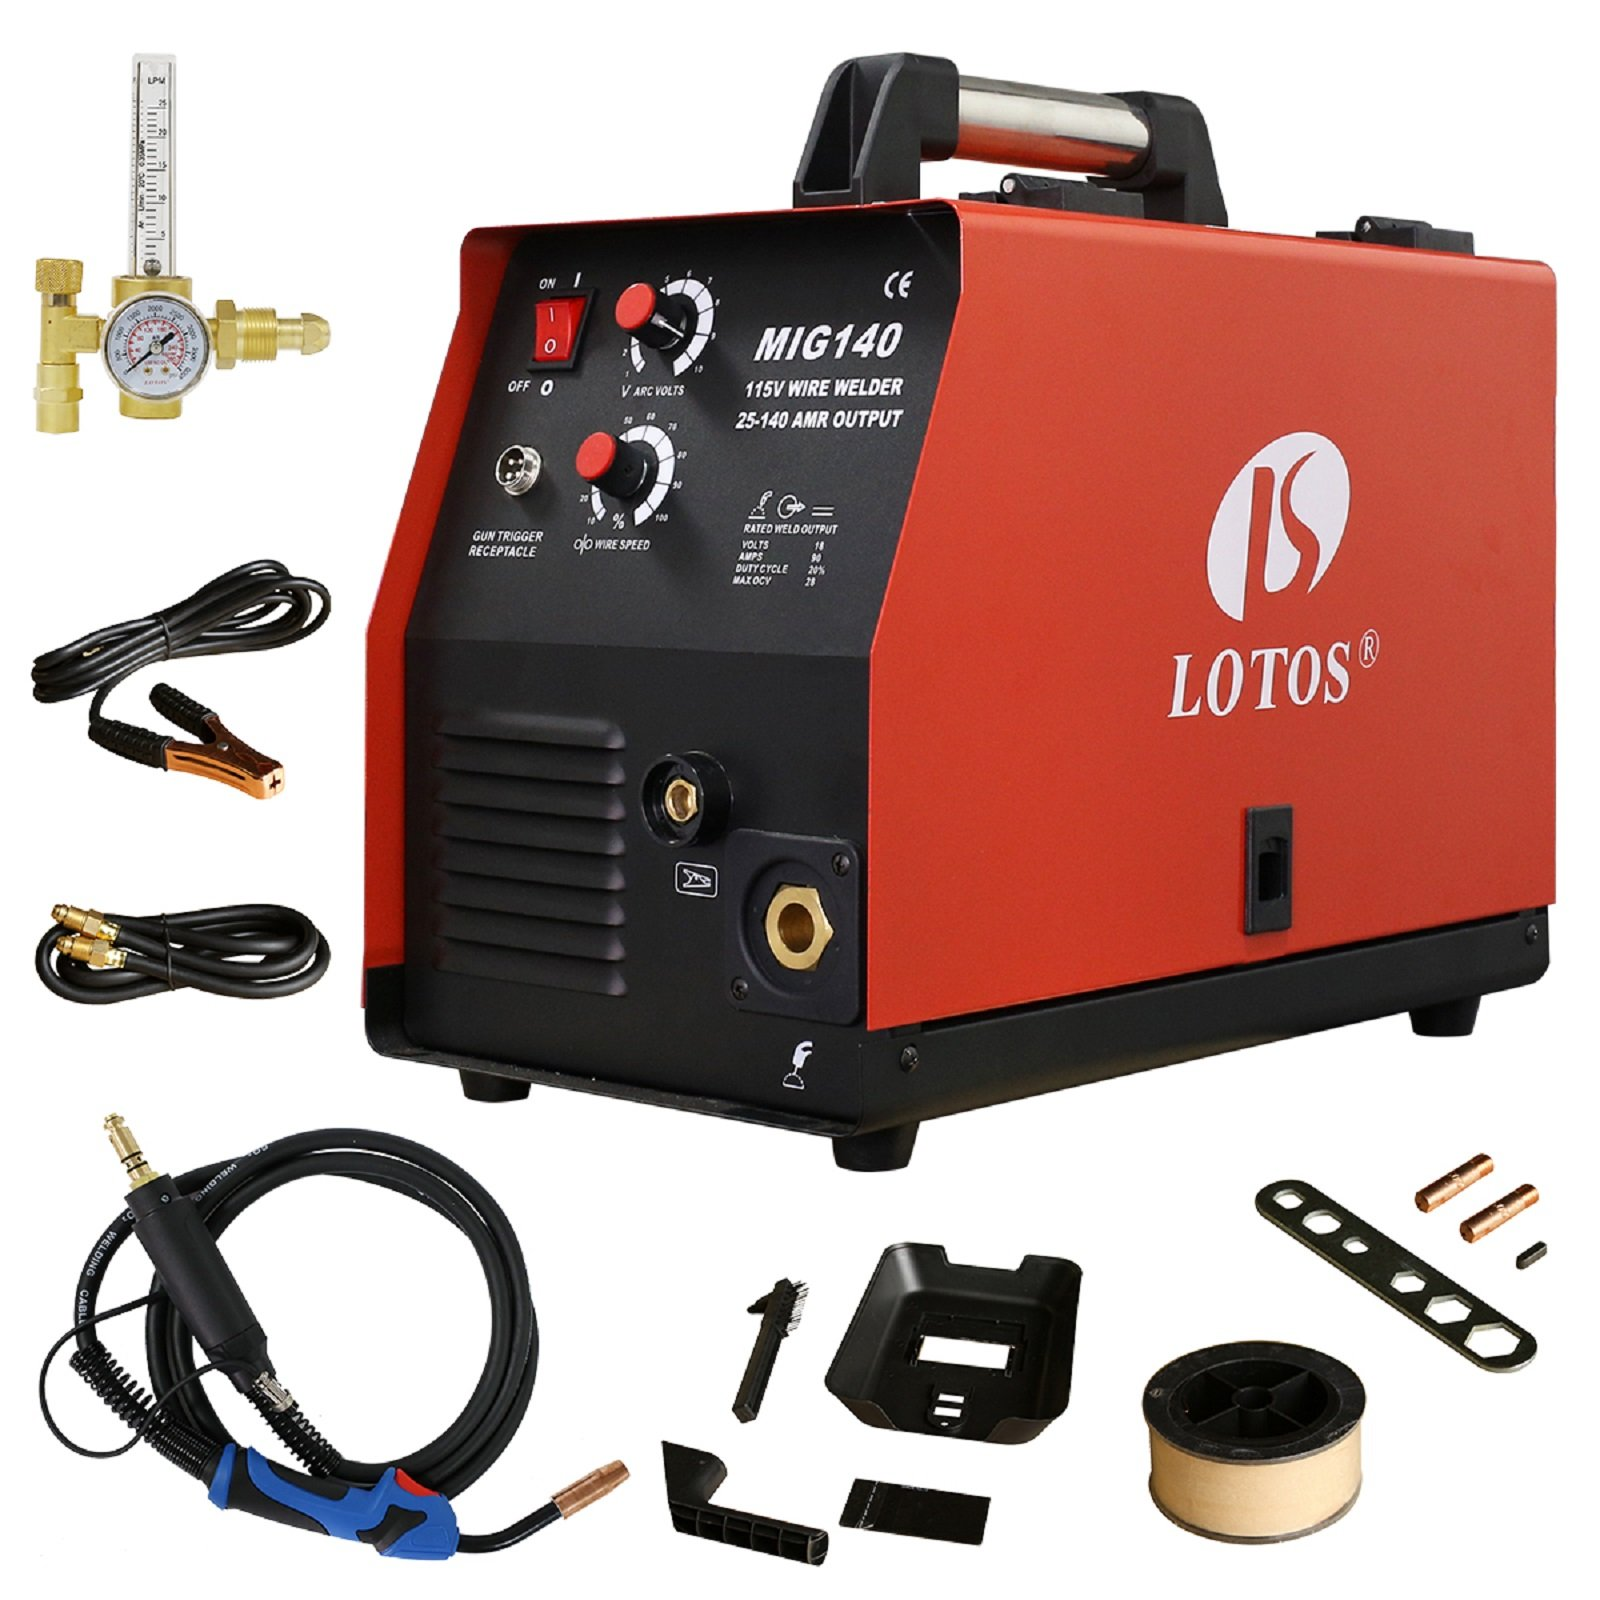 Lotos MIG140 140 Amp MIG Wire Welder Flux Core Welder and Aluminum Gas Shielded Welding with 2T/4T Switch, 110V, Red by Lotos Technology